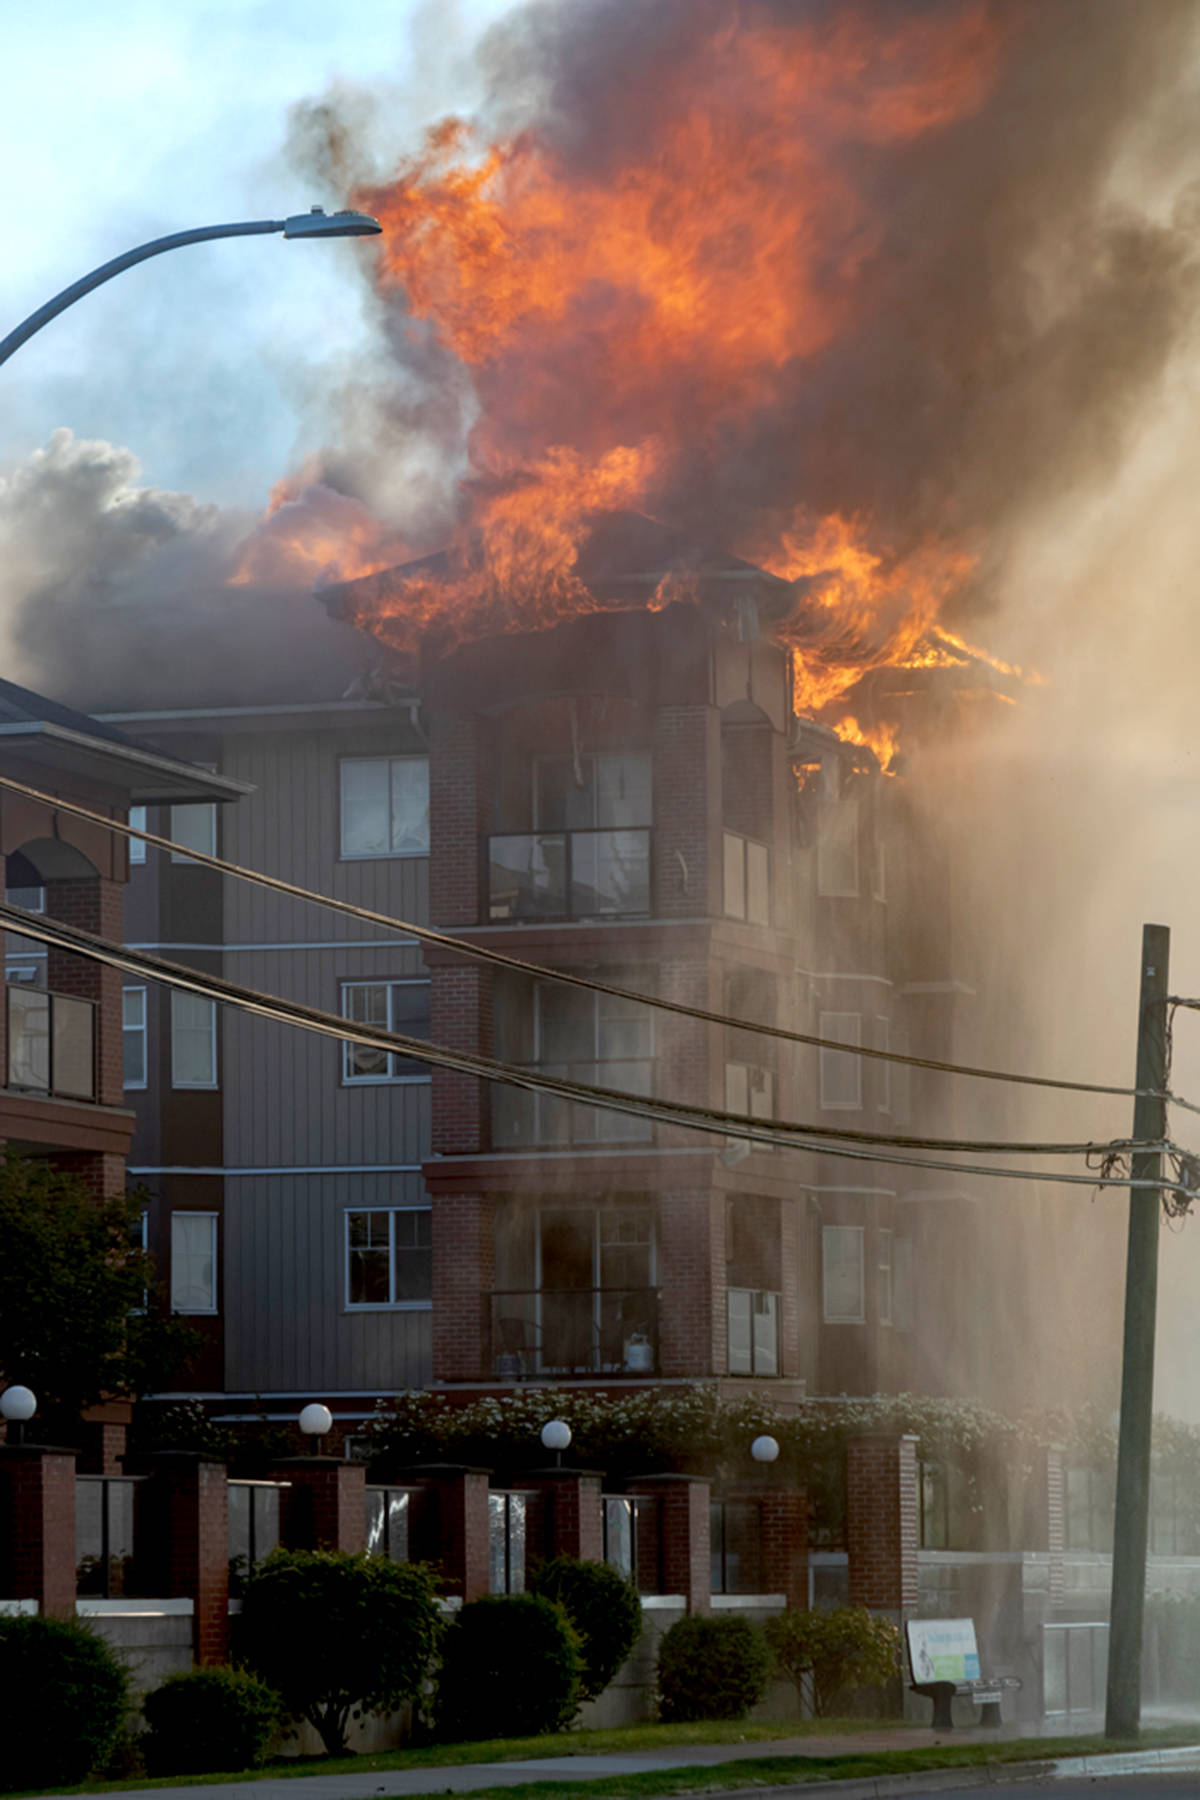 Madison Place was gutted by fire, with the worst damage on the upper floors. (Ed Mallett/Special to the Langley Advance Times)